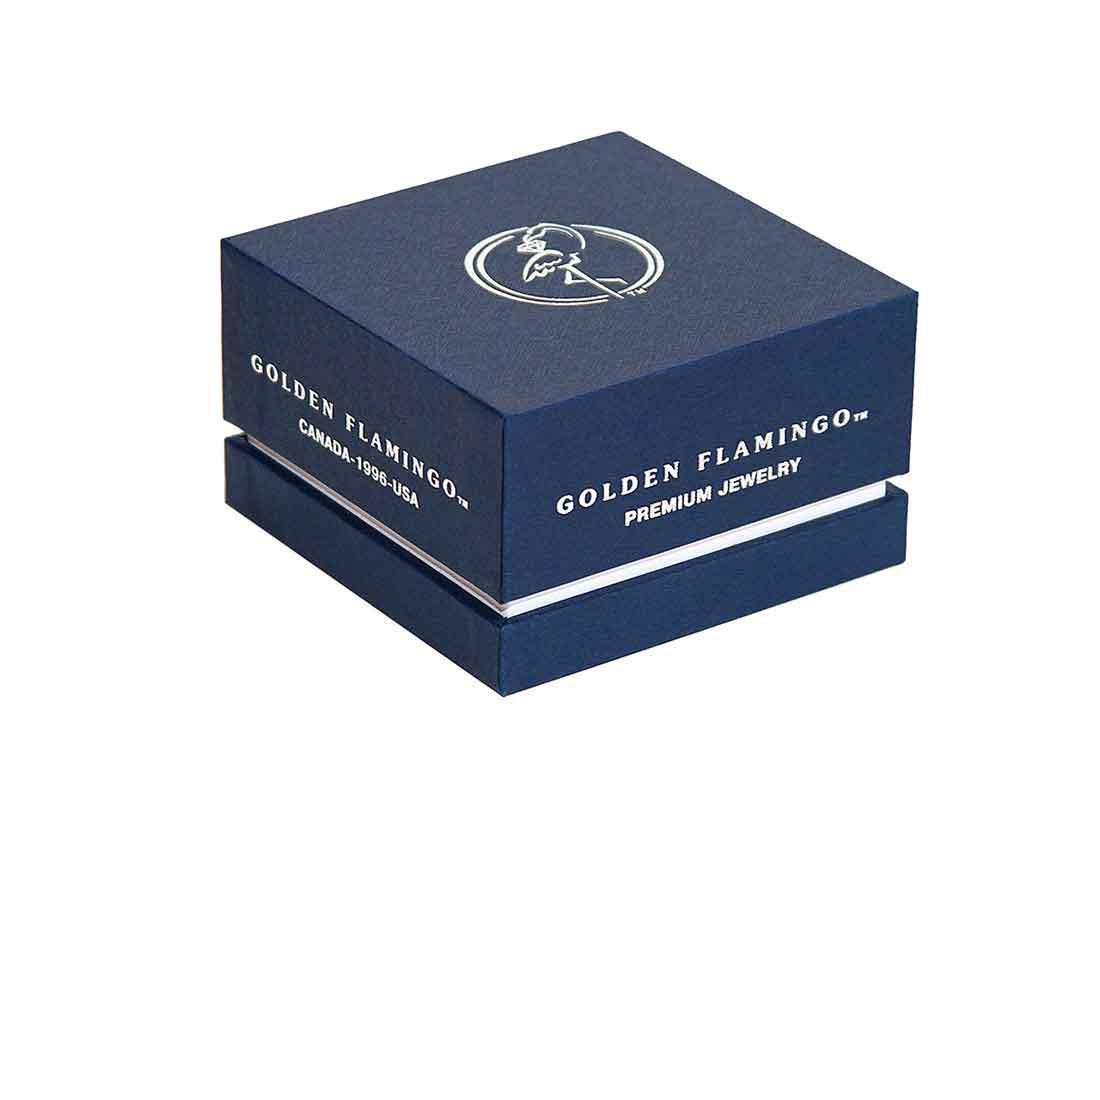 Boutique-quality gift box for gold ring